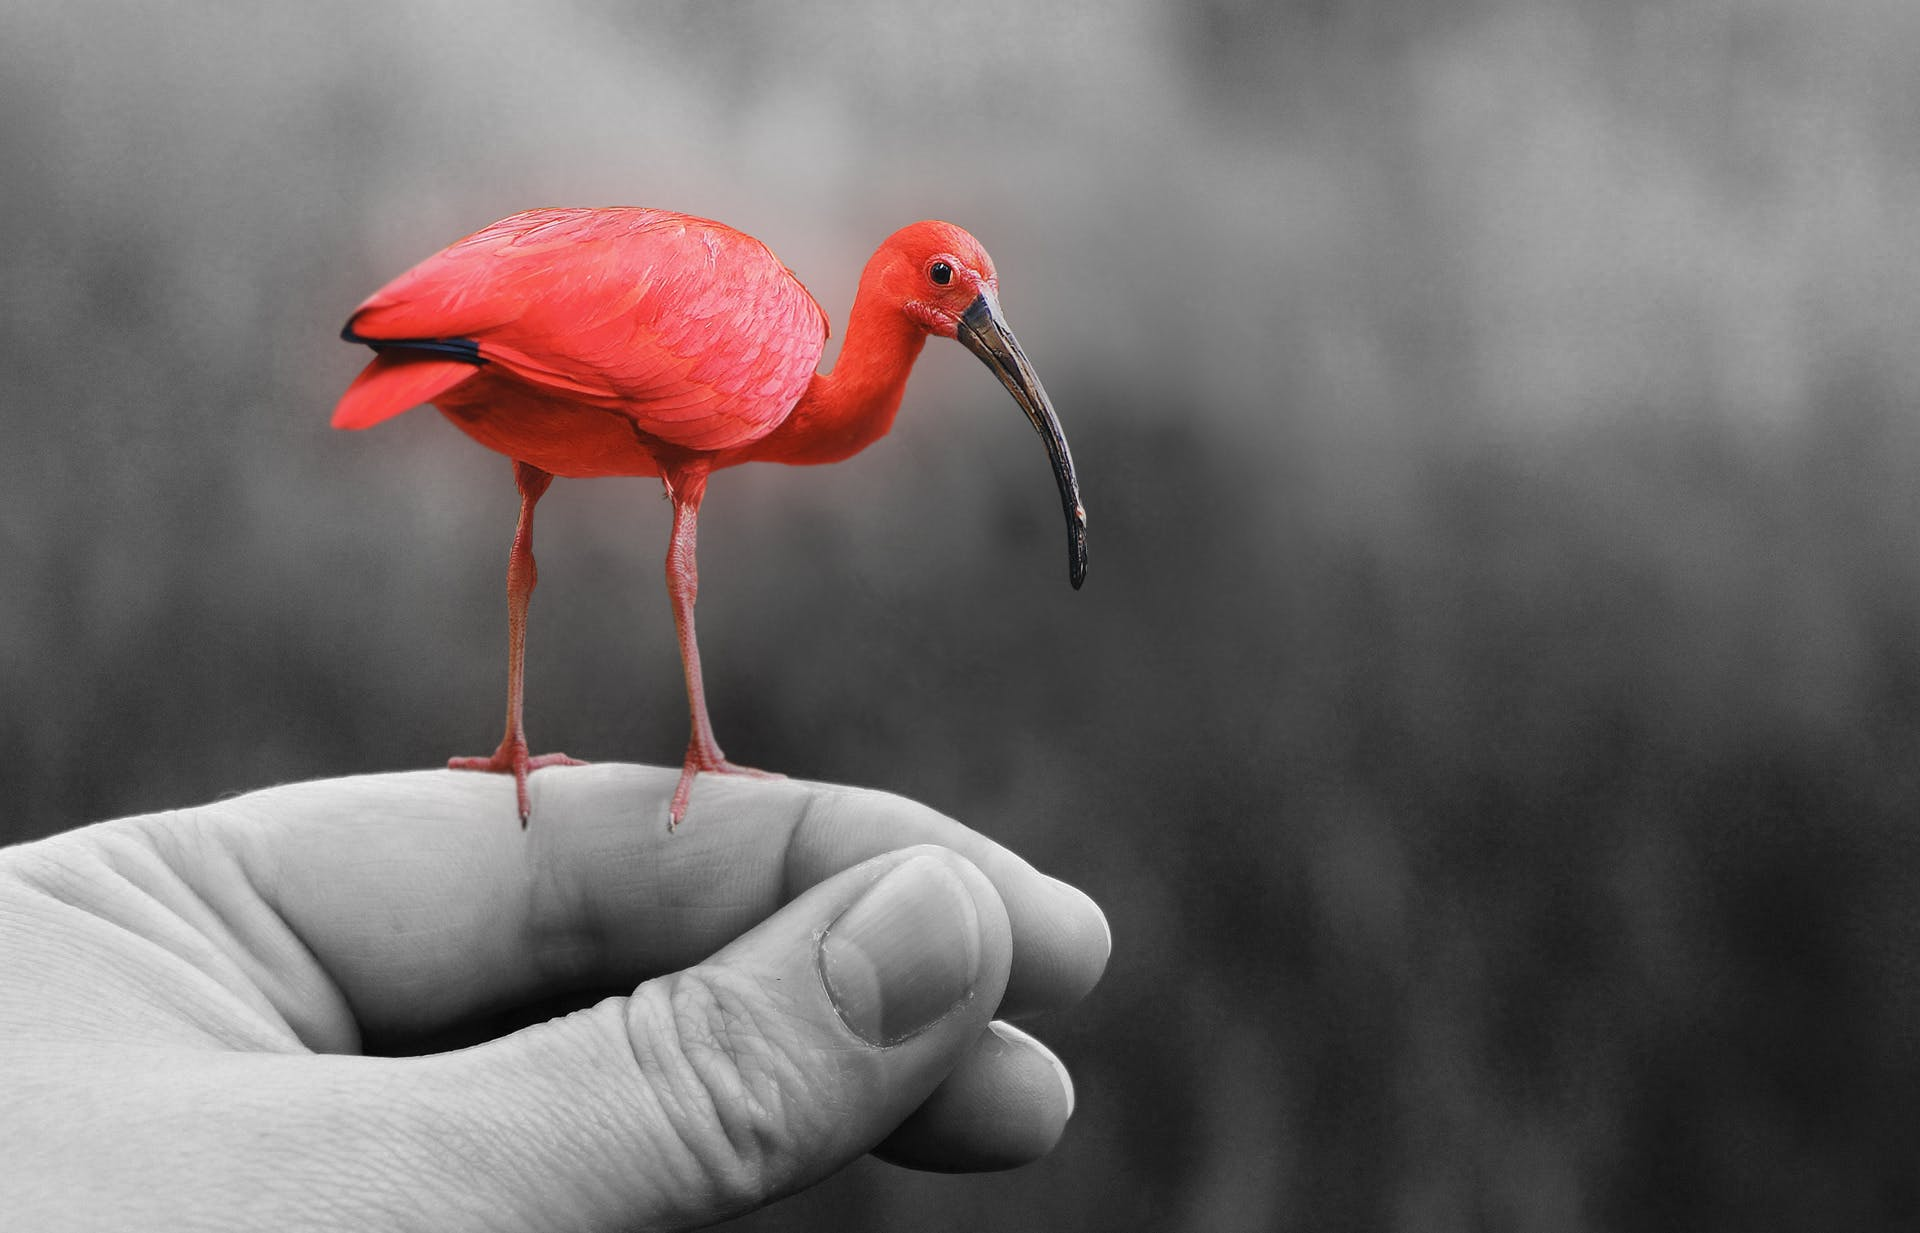 Free stock photo of nature, bird, red, hand